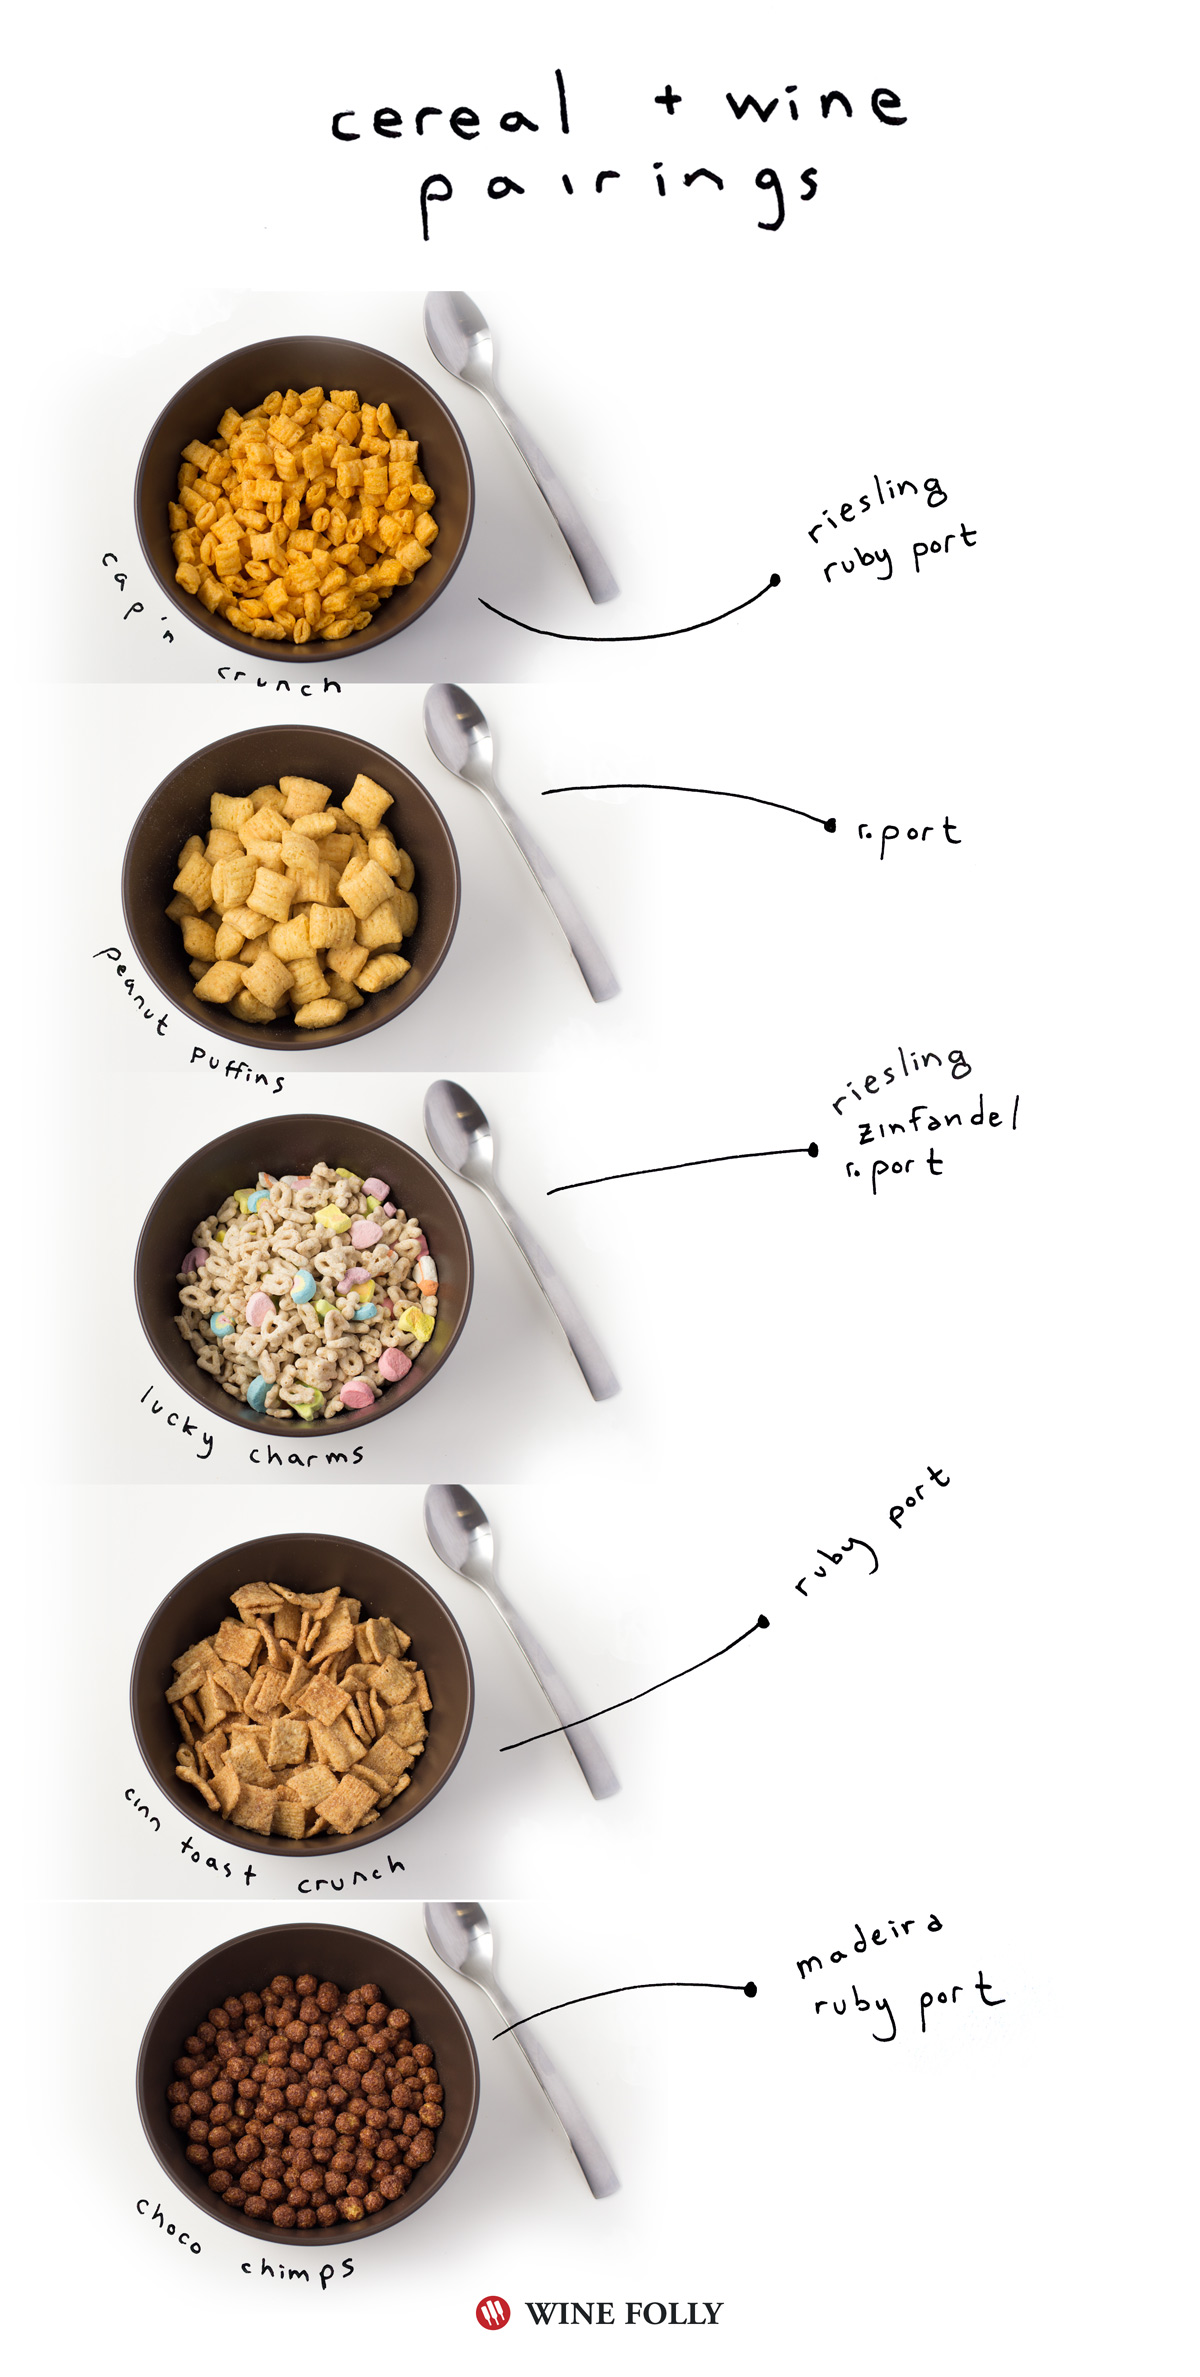 Cereal and Wine Pairings by Wine Folly